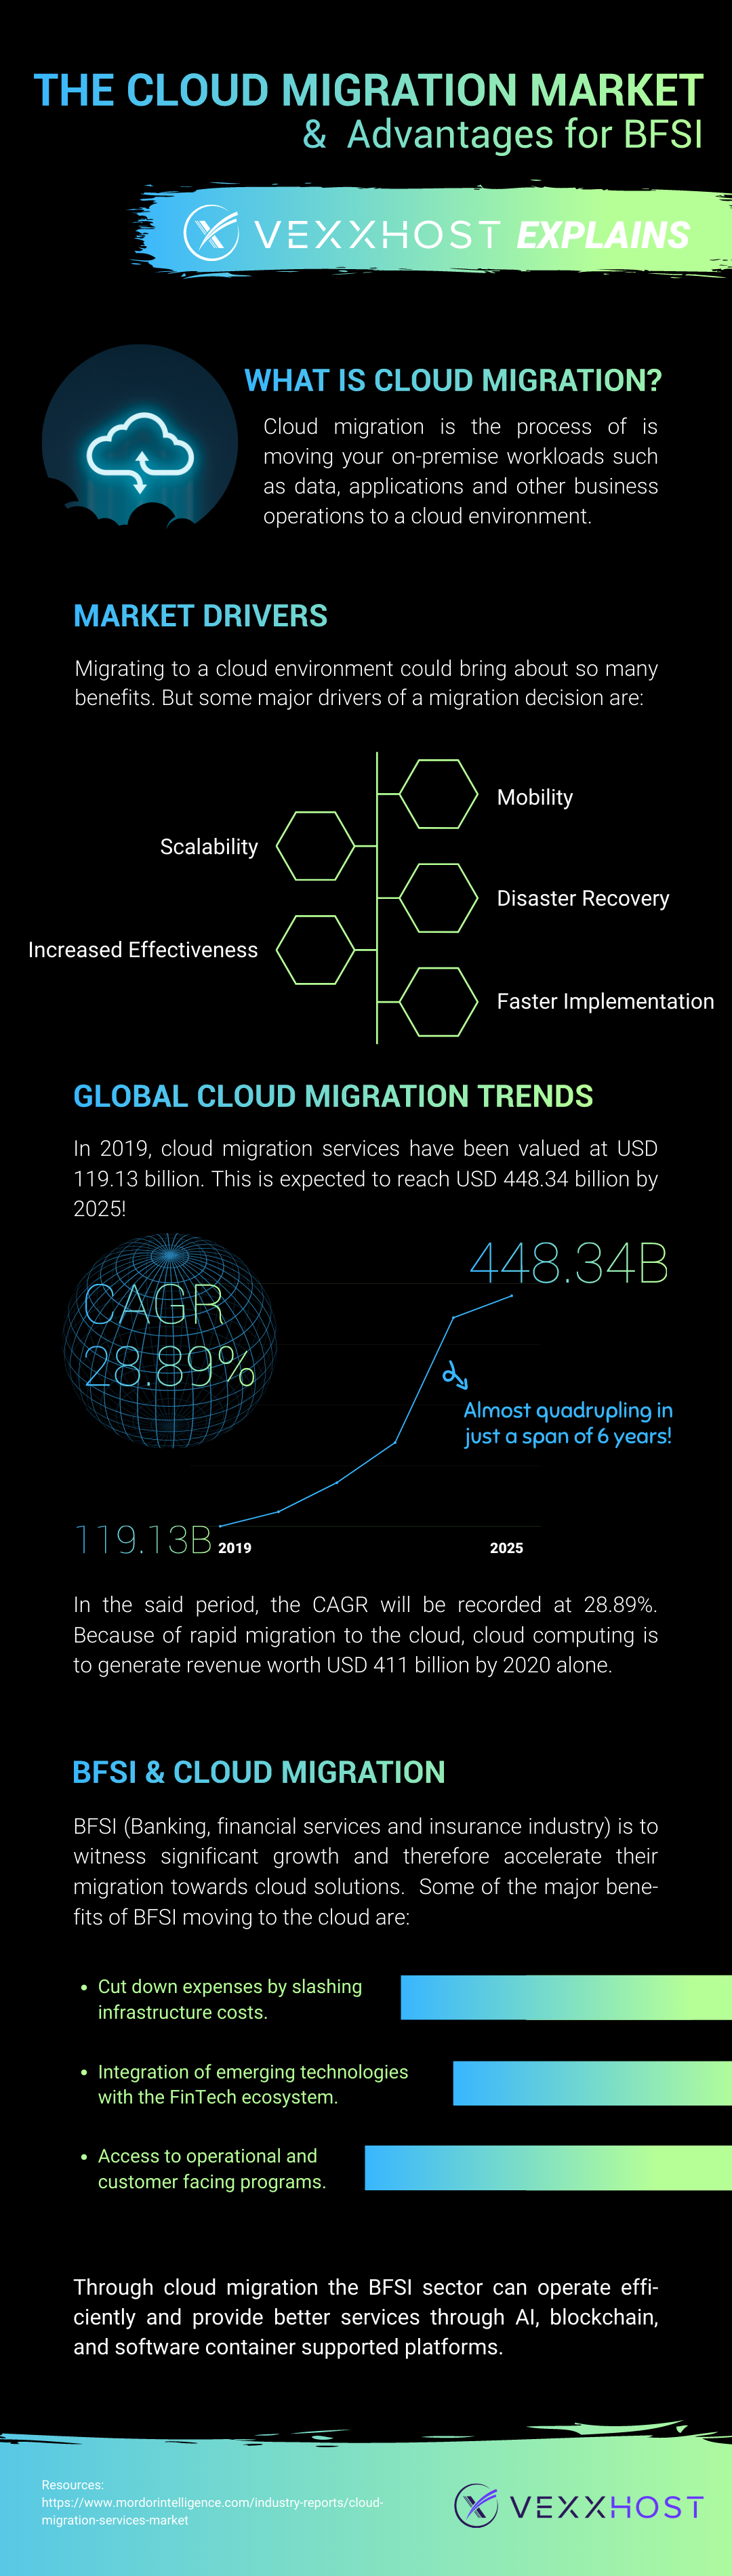 Cloud Migration and BFSI